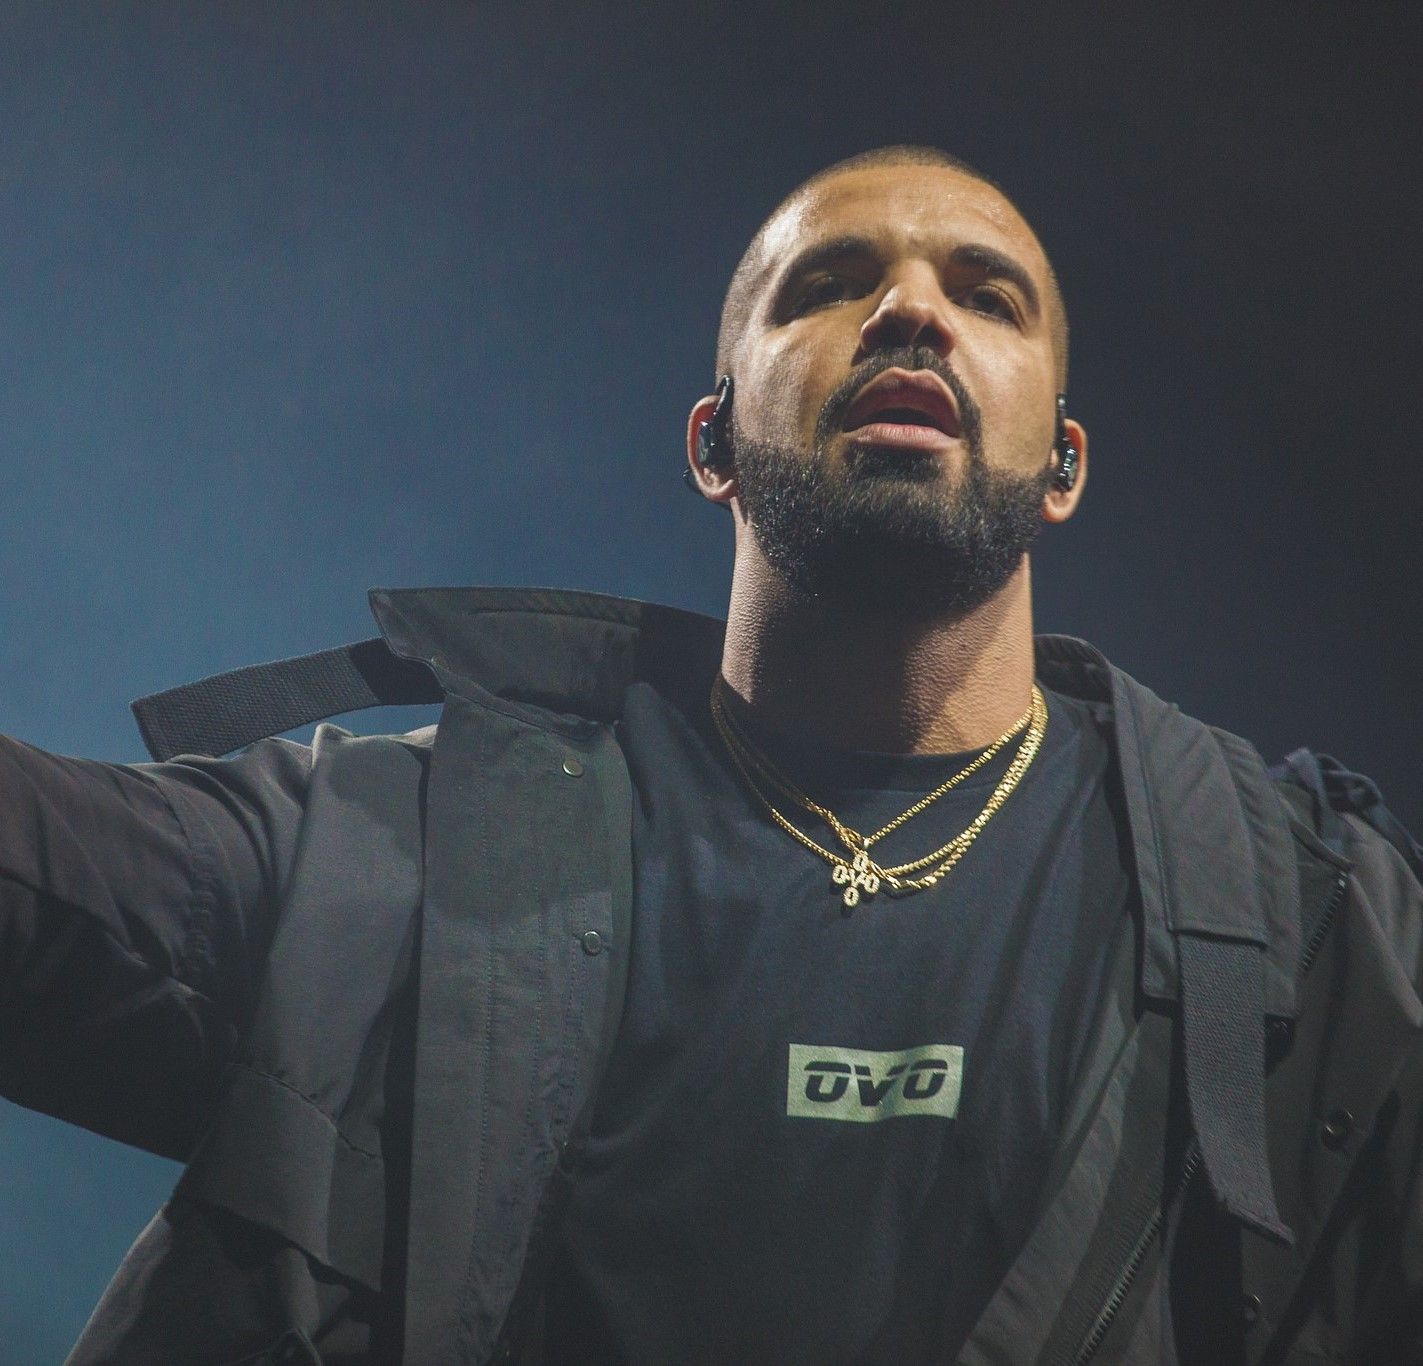 Drake's Next Career Move May Be in Sports Reporting